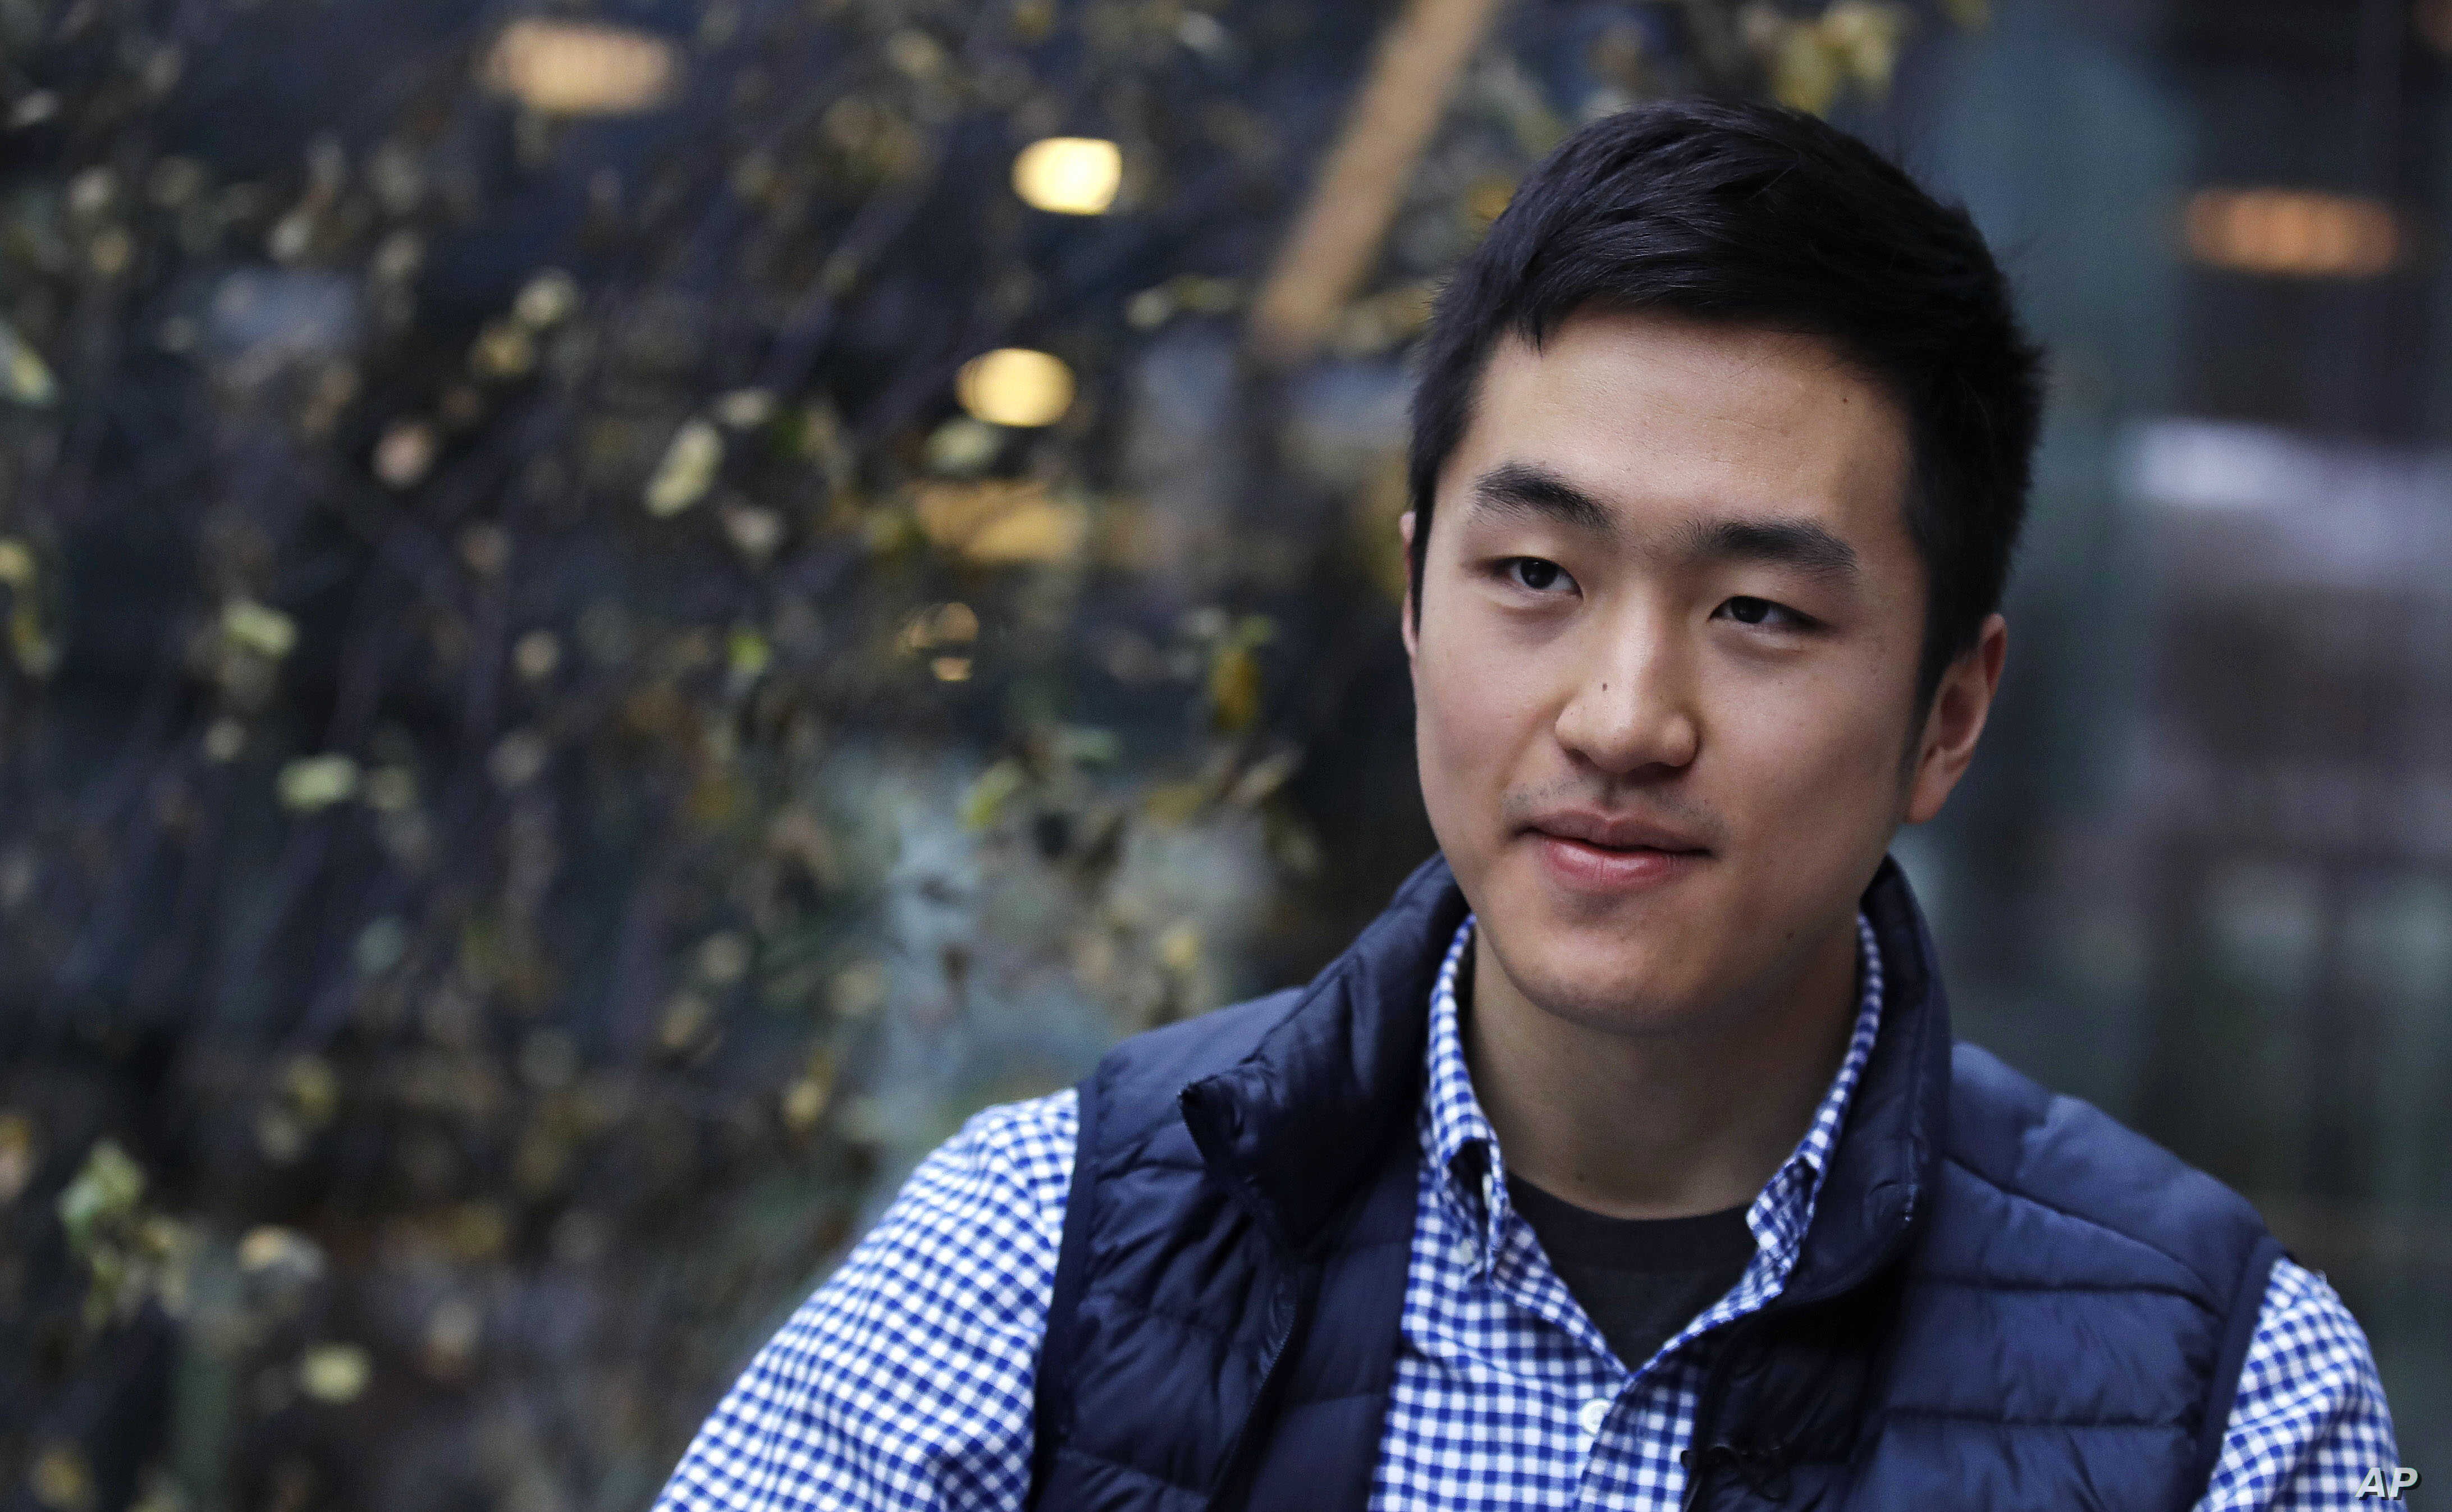 Harvard University graduate Jin K. Park, who holds a degree in molecular and cellular biology, listens during an interview in Cambridge, Mass., Thursday, Dec. 13, 2018. (AP Photo/Charles Krupa)